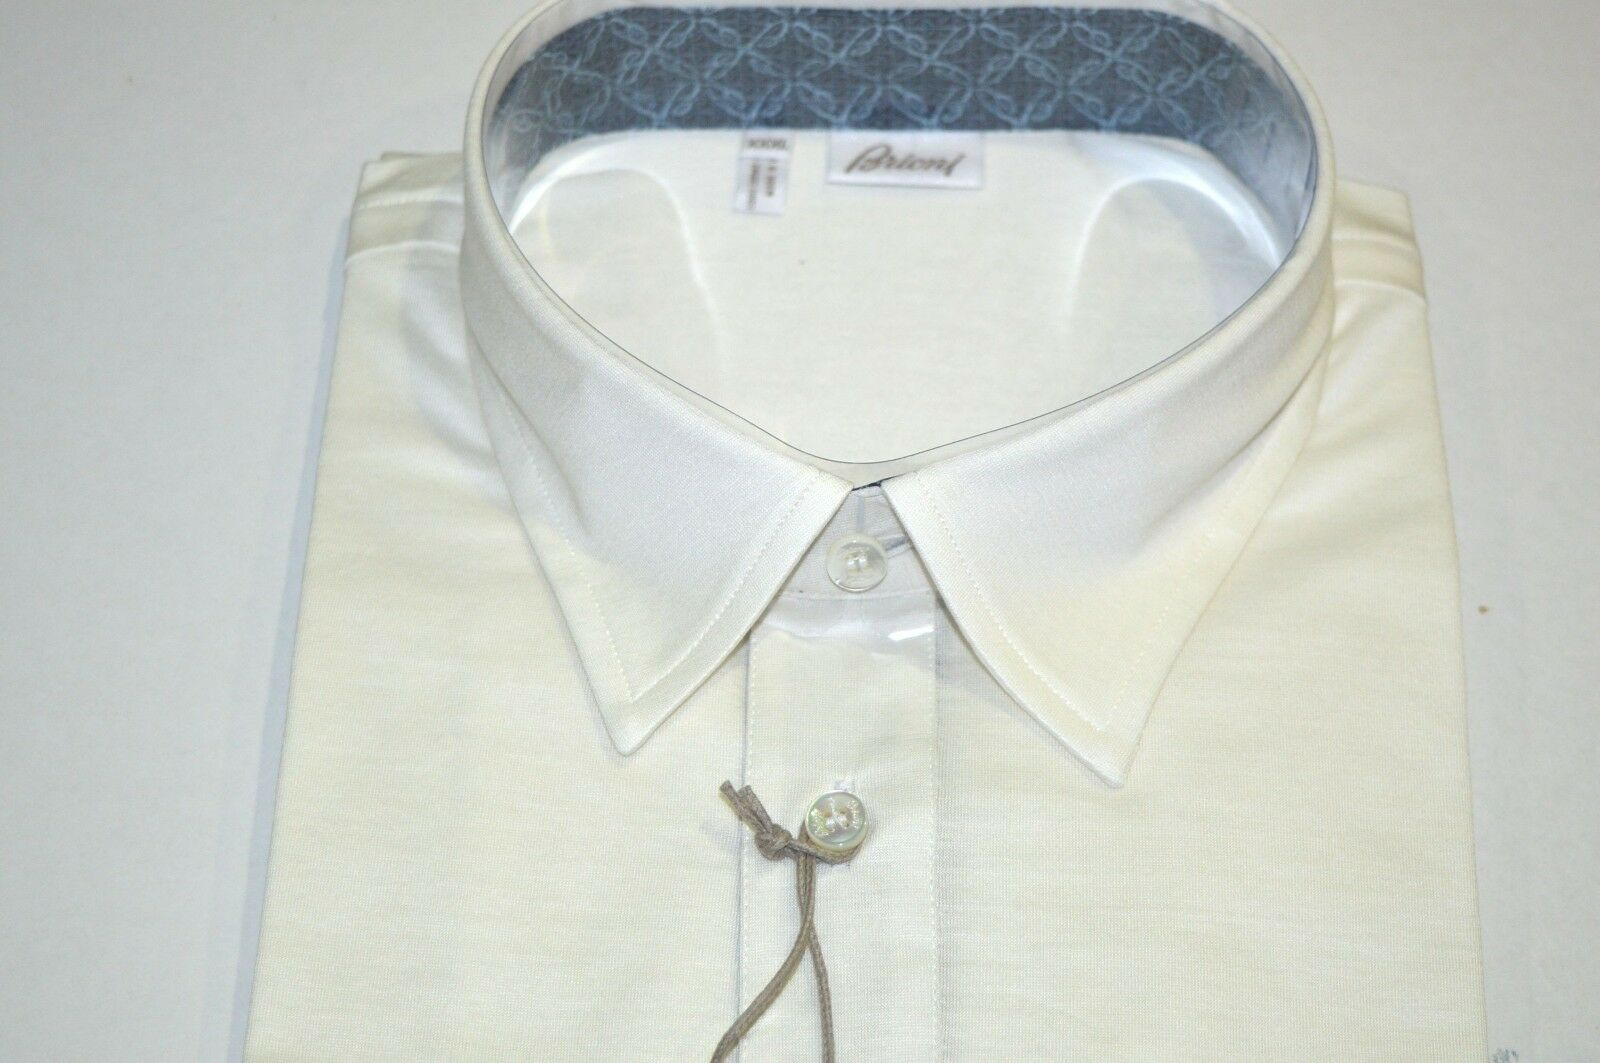 NEW  BRIONI Polo  Short Sleeve baumwolle Größe 3XL Us Eu 58 (SGG10)